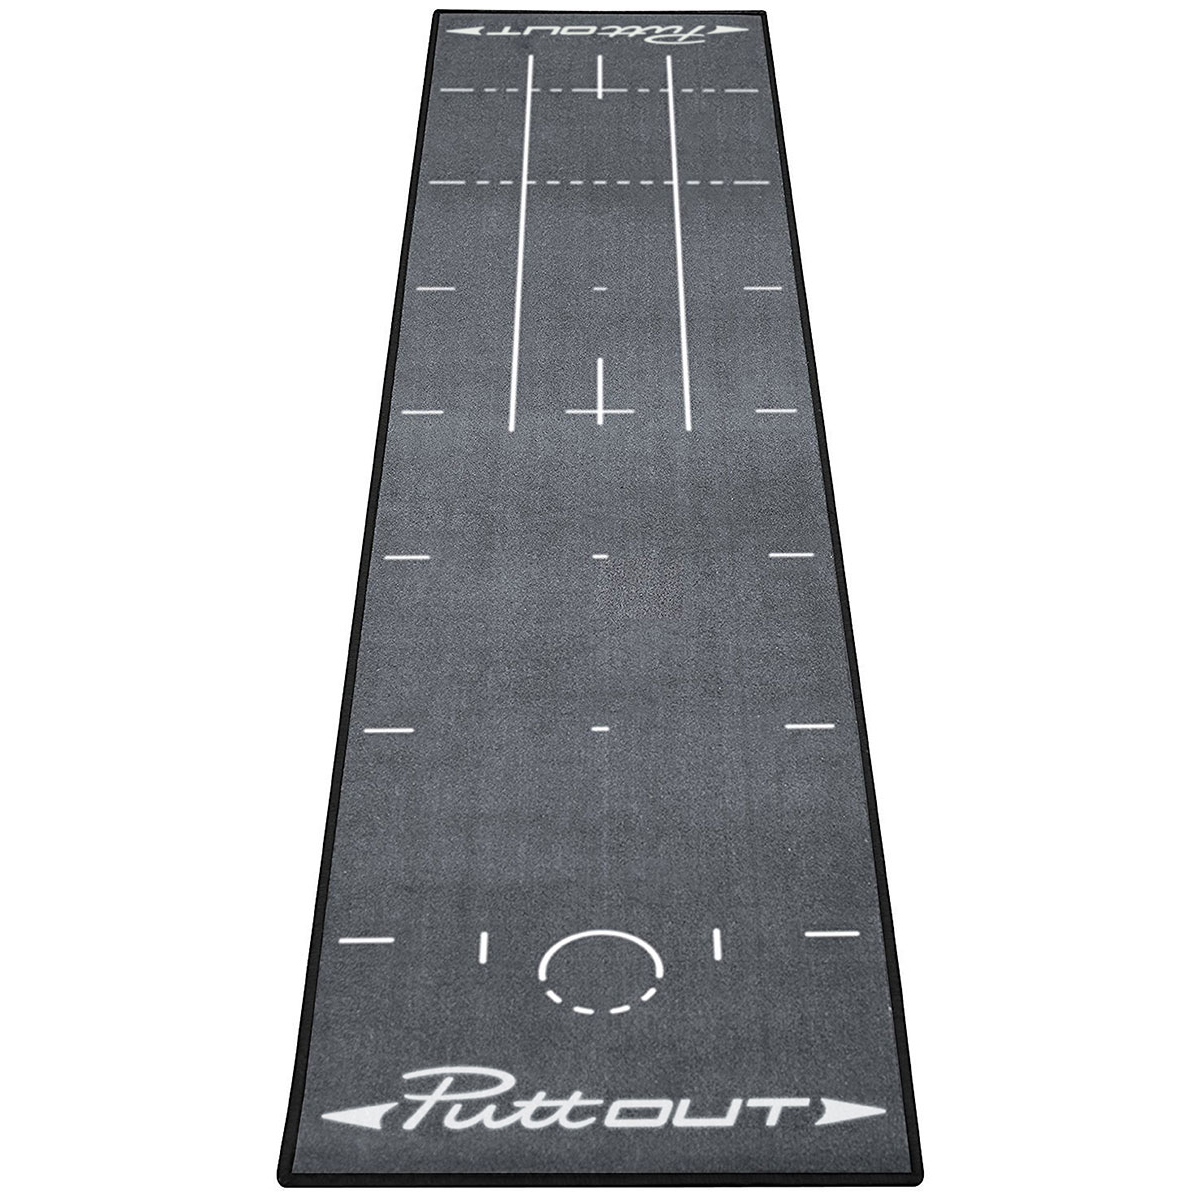 Puttout Deluxe Putting Mat From American Golf